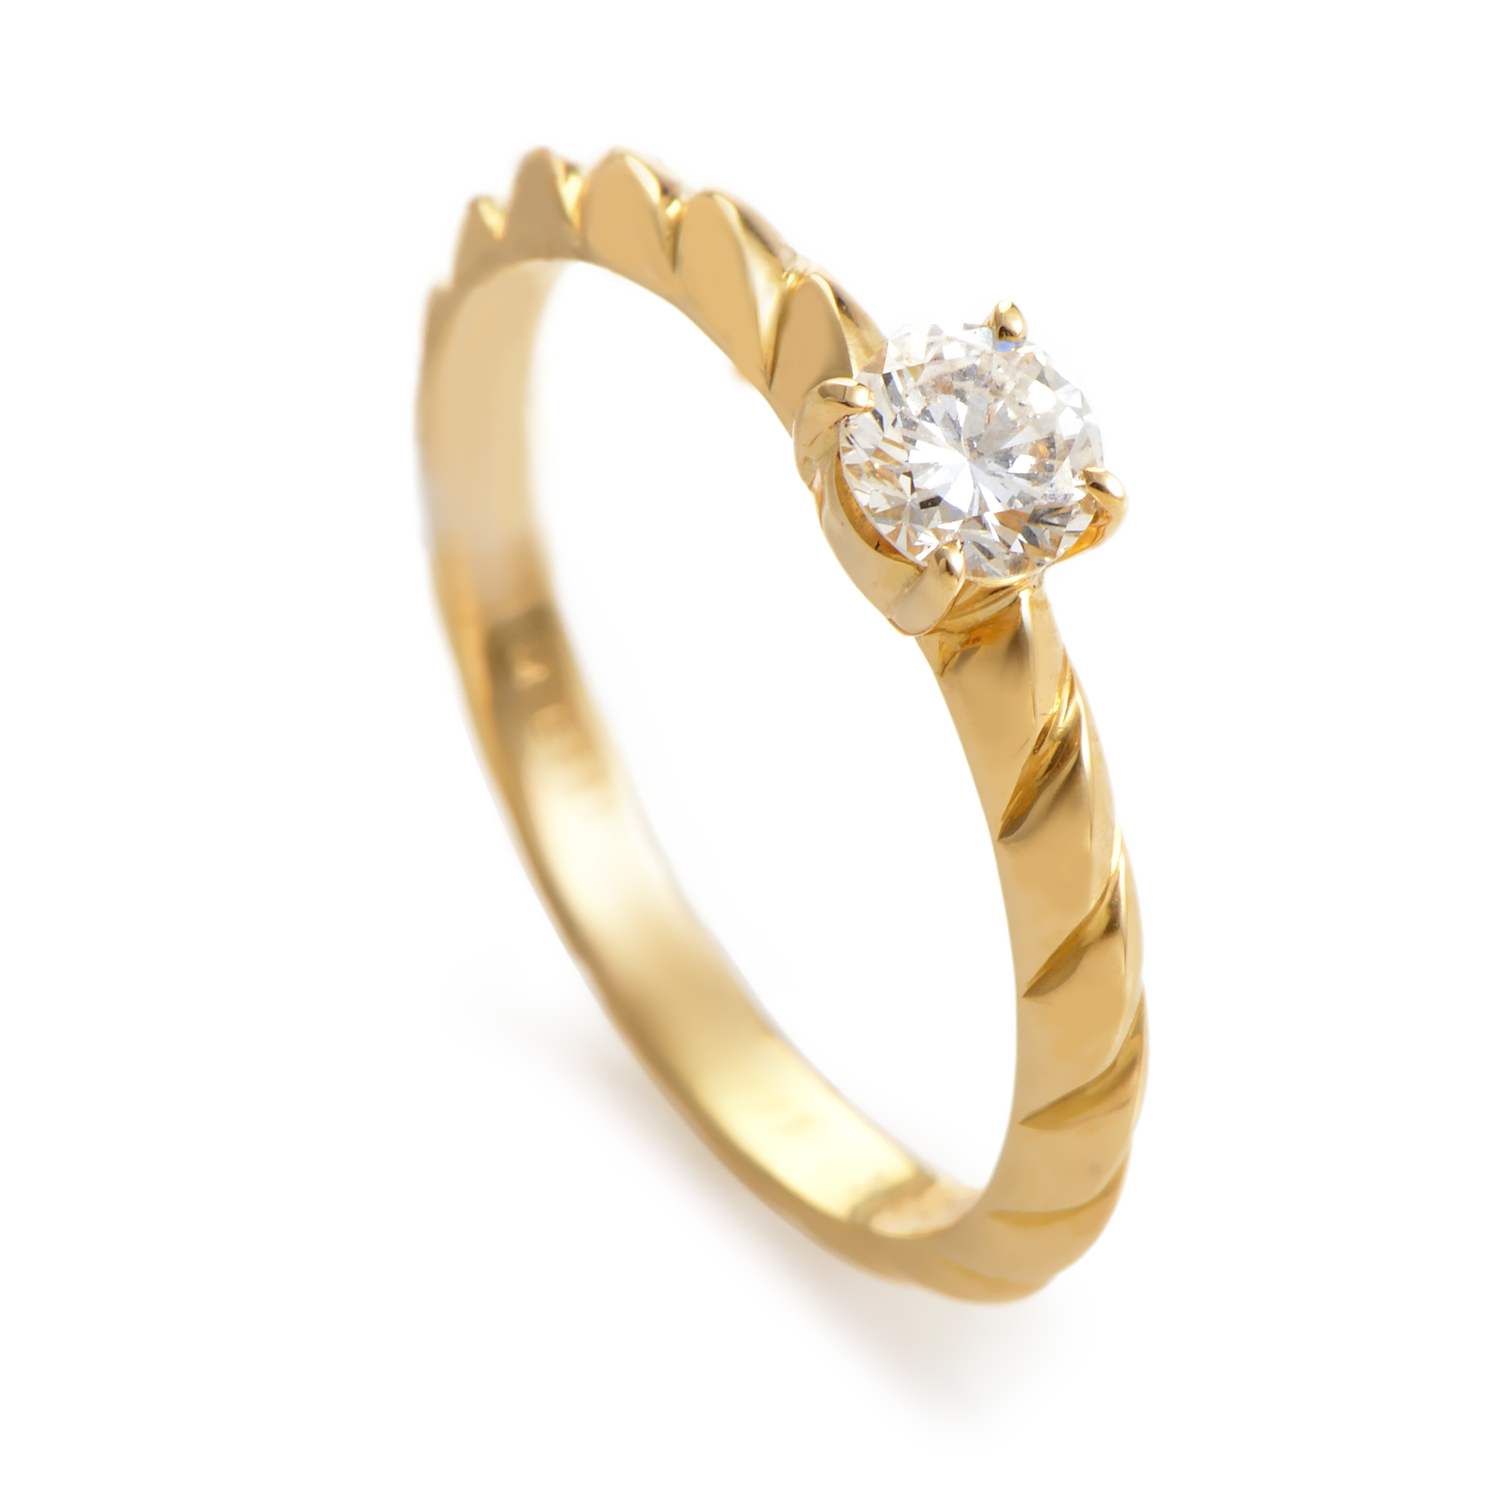 Chaumet 18K Yellow Gold Diamond Solitaire Engagement Ring